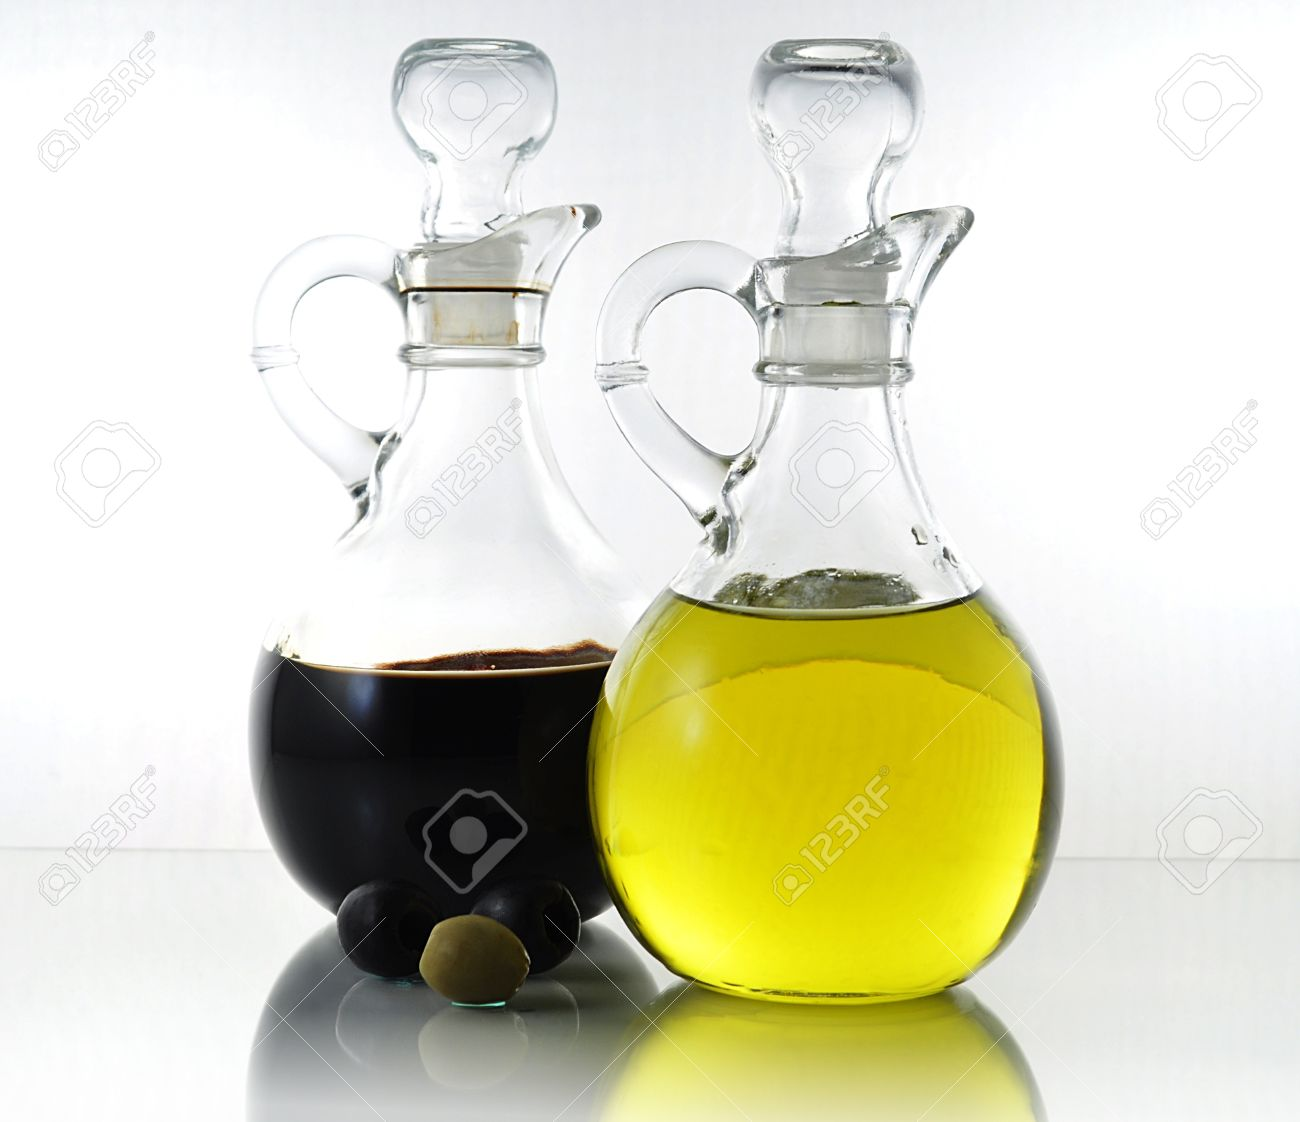 oil and vinegar bottles stock photo picture and royalty free  - oil and vinegar bottles stock photo